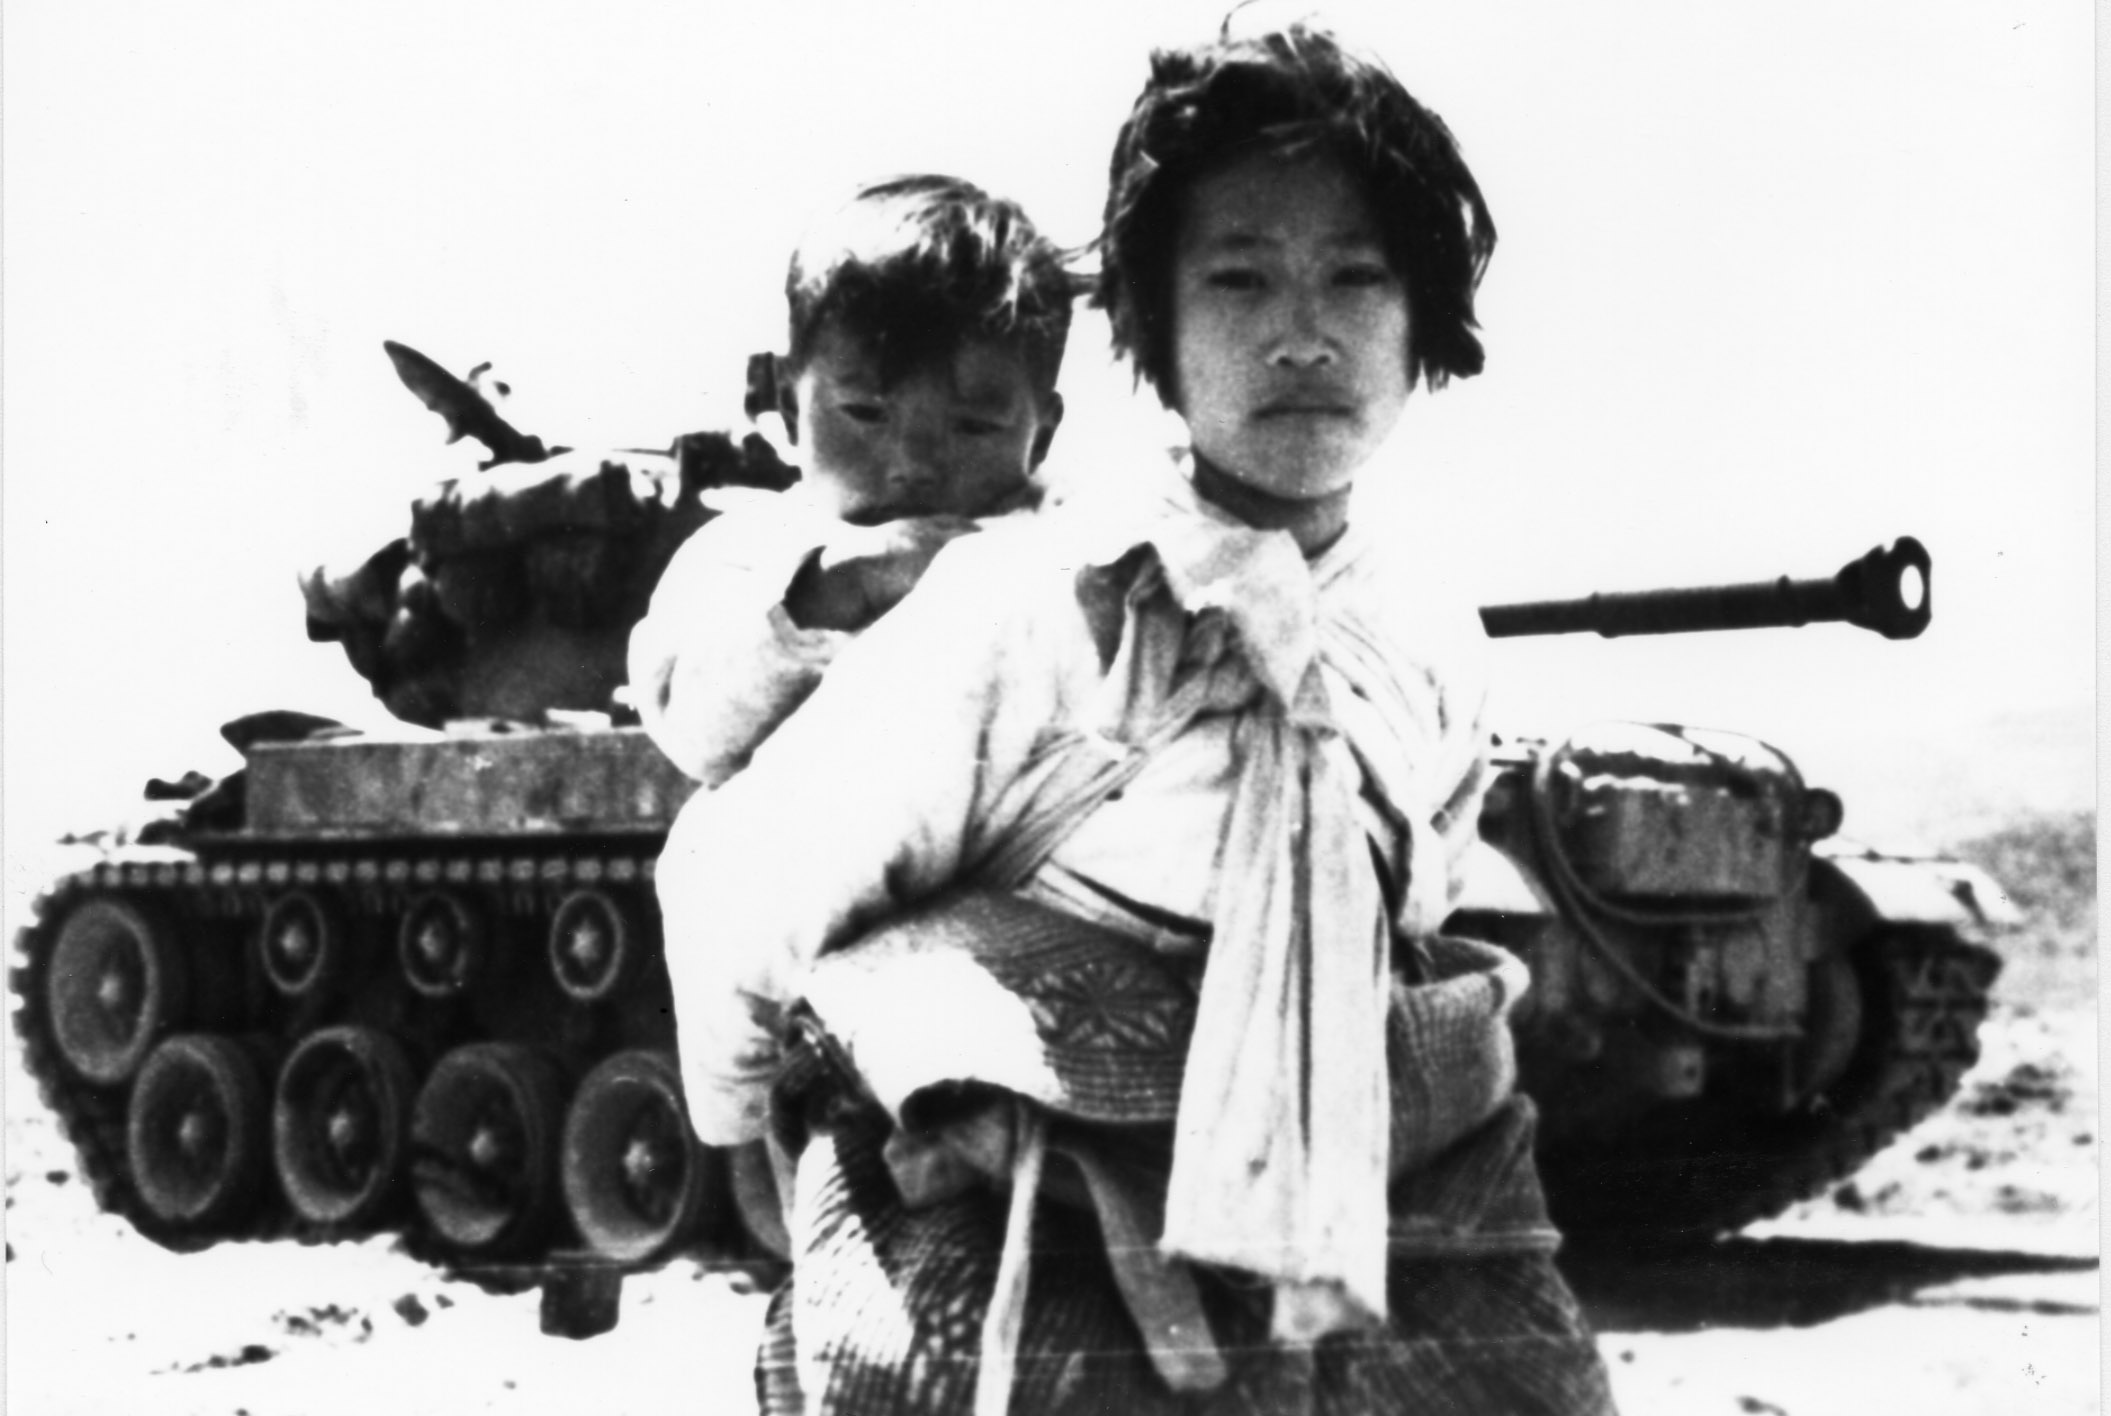 With her brother on her back, a Korean girl trudges by a stalled tank in Haengju, Korea, June 9, 1951. Photo by Air Force Major R. V. Spencer